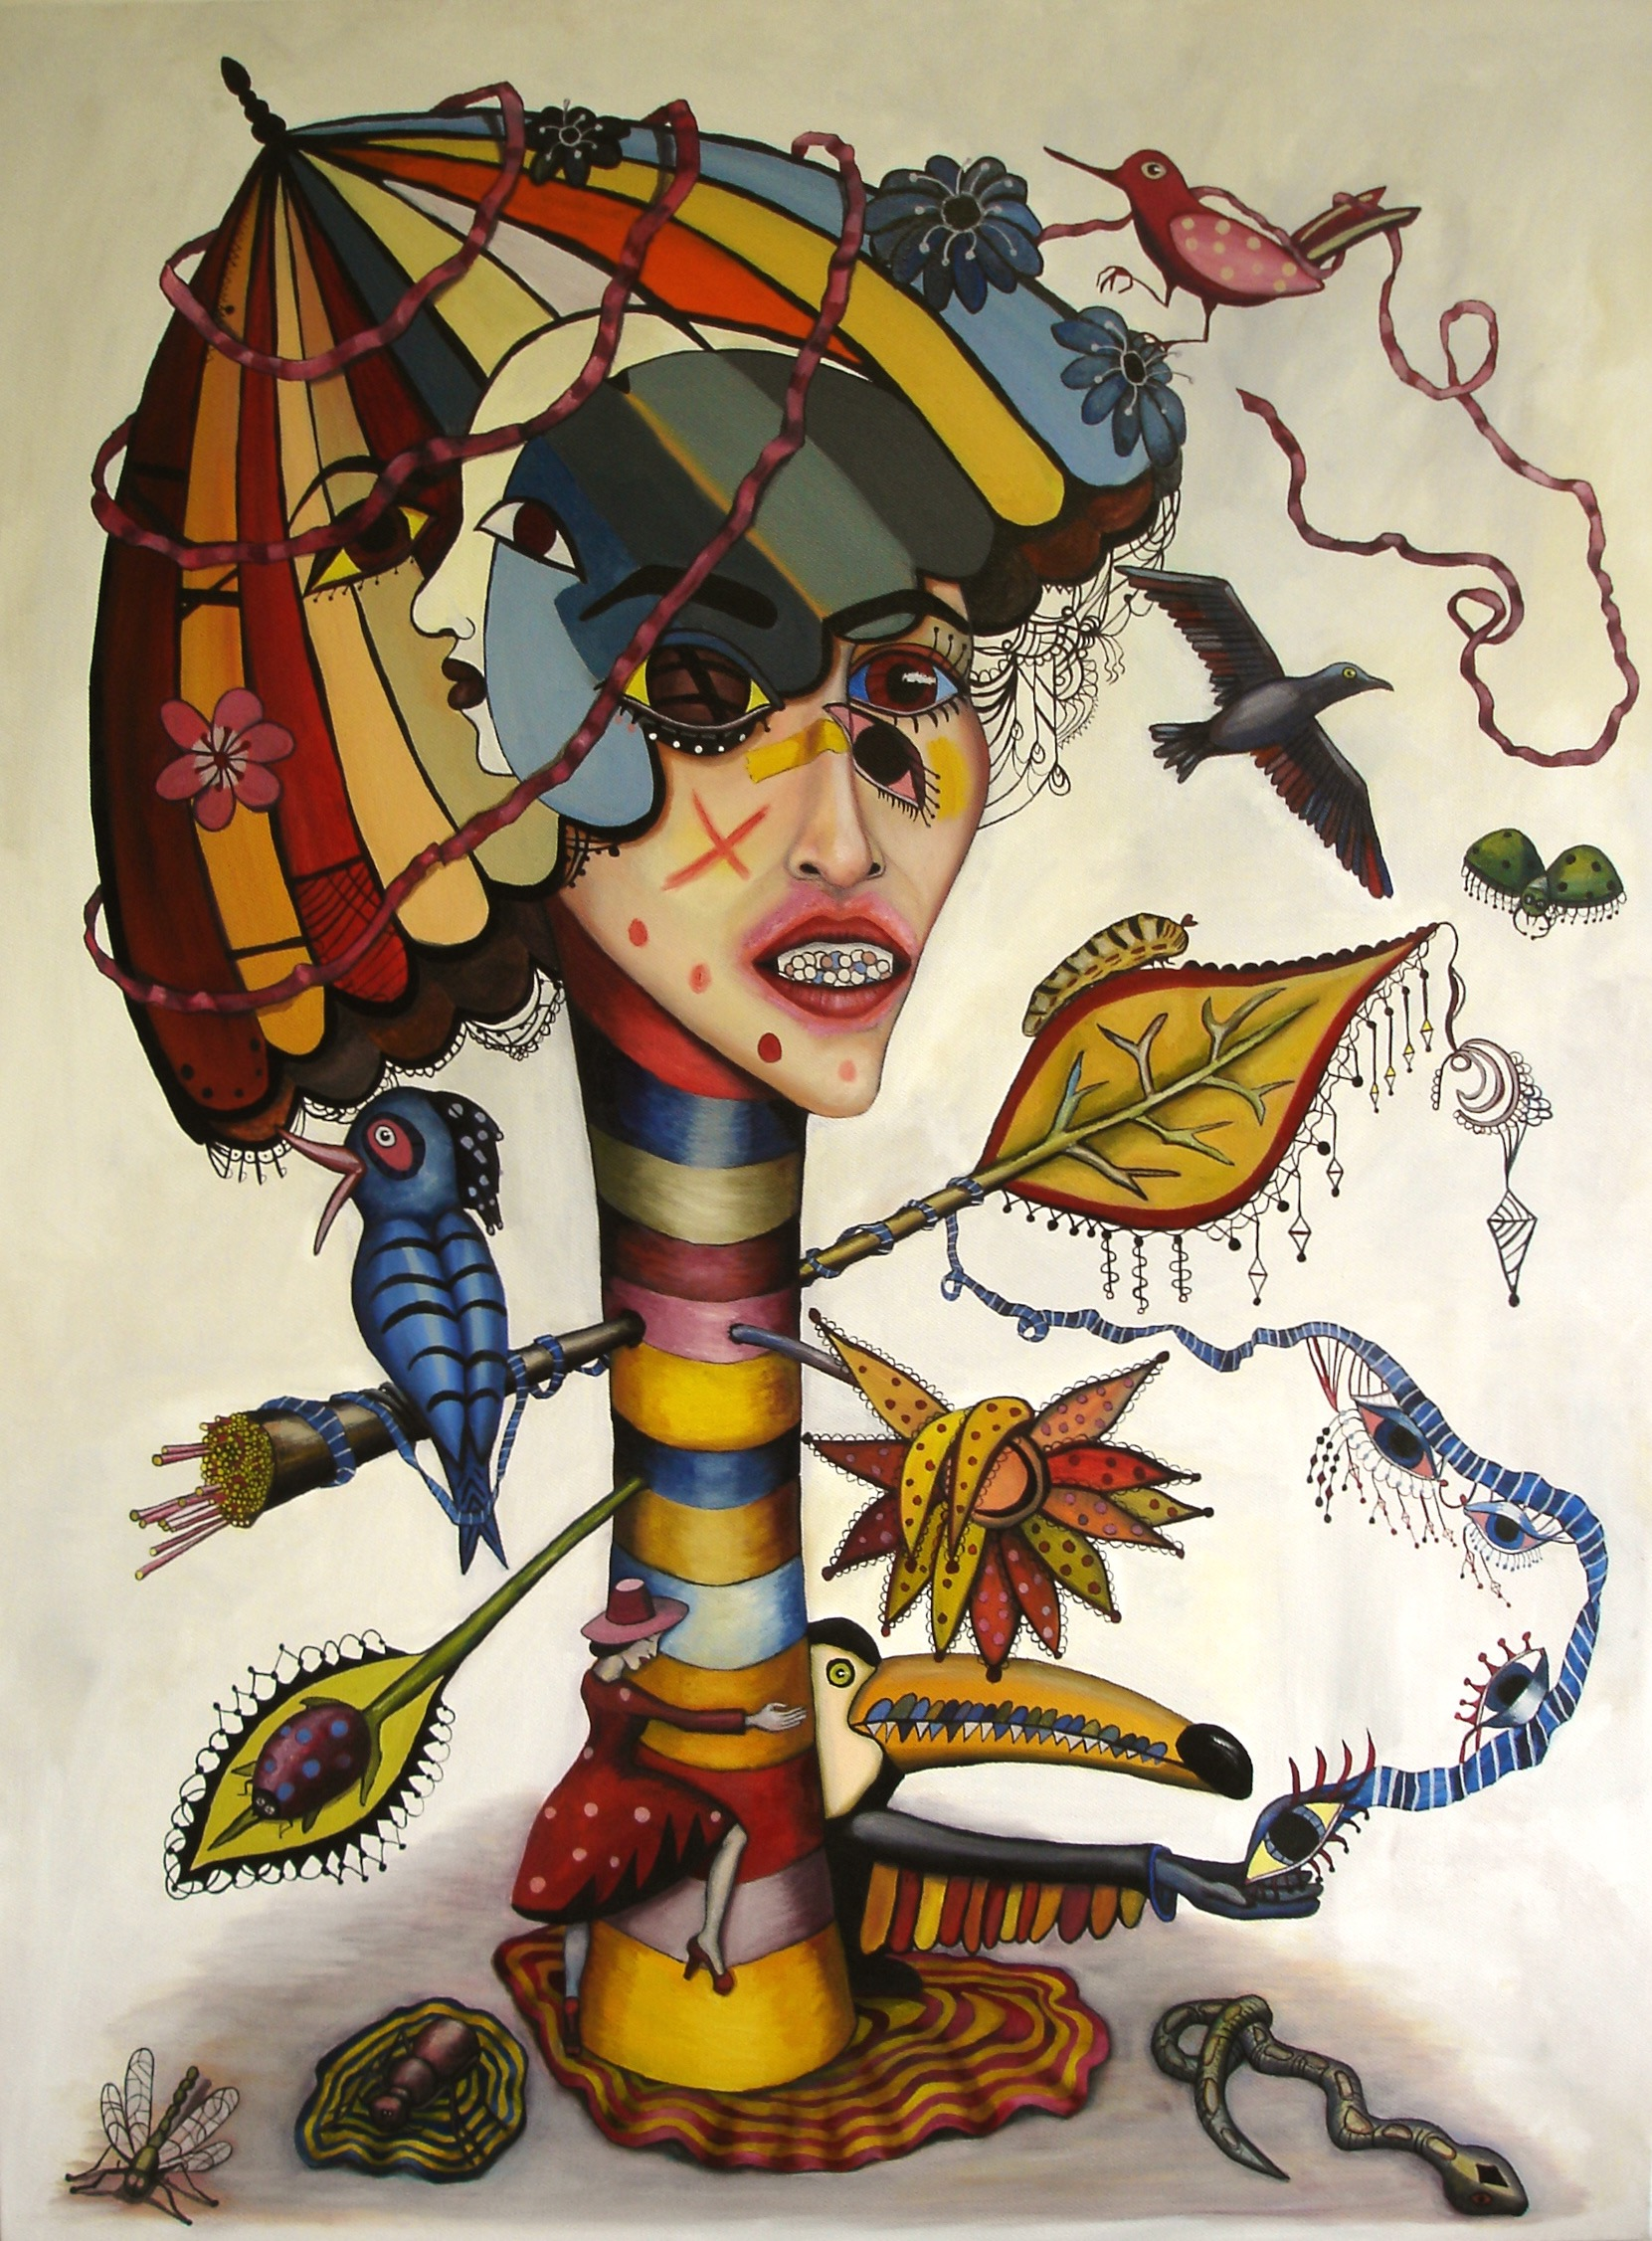 LOVE DRUG - 78CM X 115CM - OIL ON CANVAS - 2009